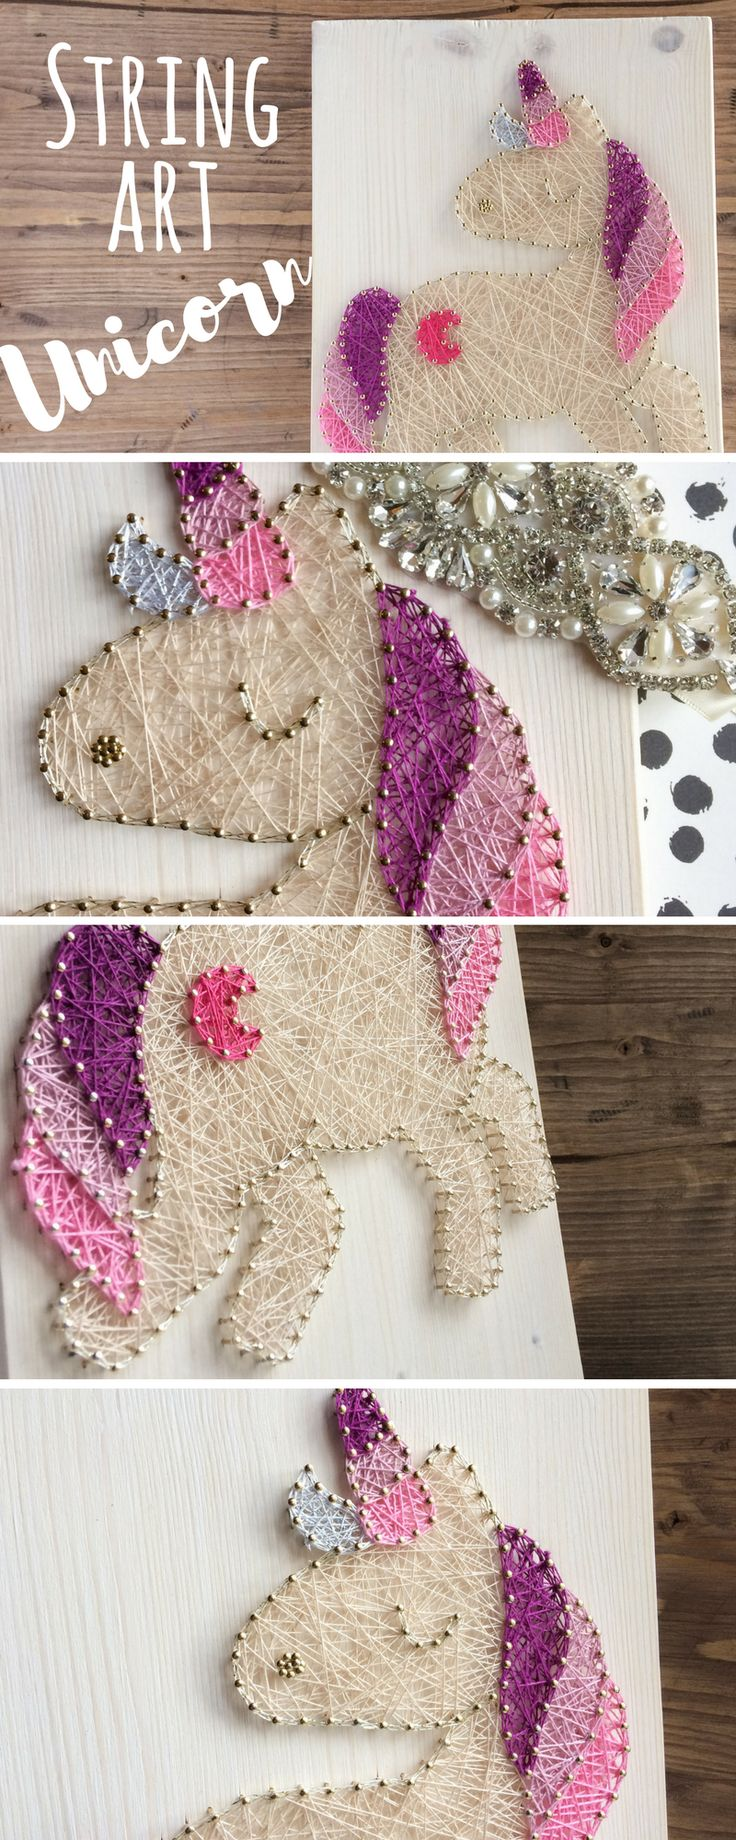 Colorful Unicorn Wall Decor For Girly Girls Or Anyone Who Is A Unicorn  Lover,lovely Present For Birthday Or Great Nursery Or Kids Room Decor